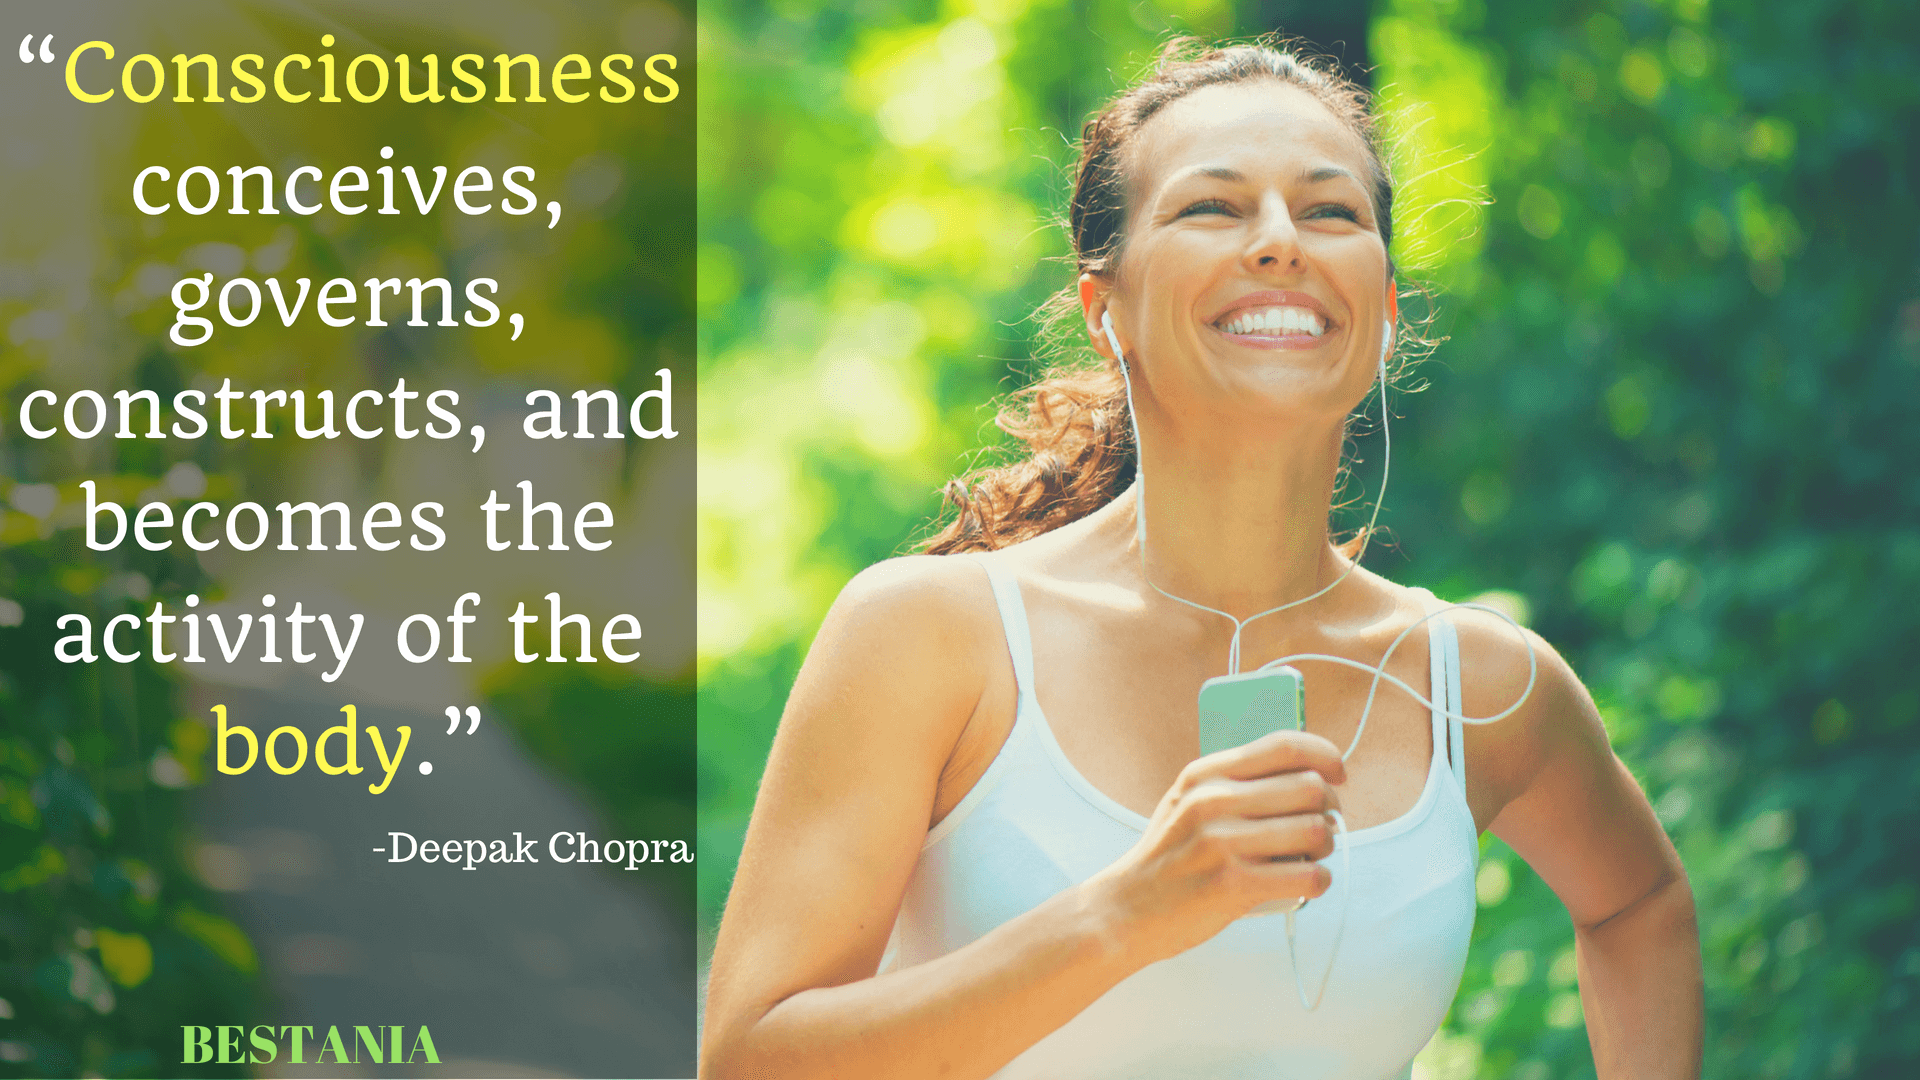 CONSCIOUSNESS CONCEIVES, GOVERNS, CONSTRUCTS, AND BECOMES THE ACTIVITY OF THE BODY.– DEEPAK CHOPRA